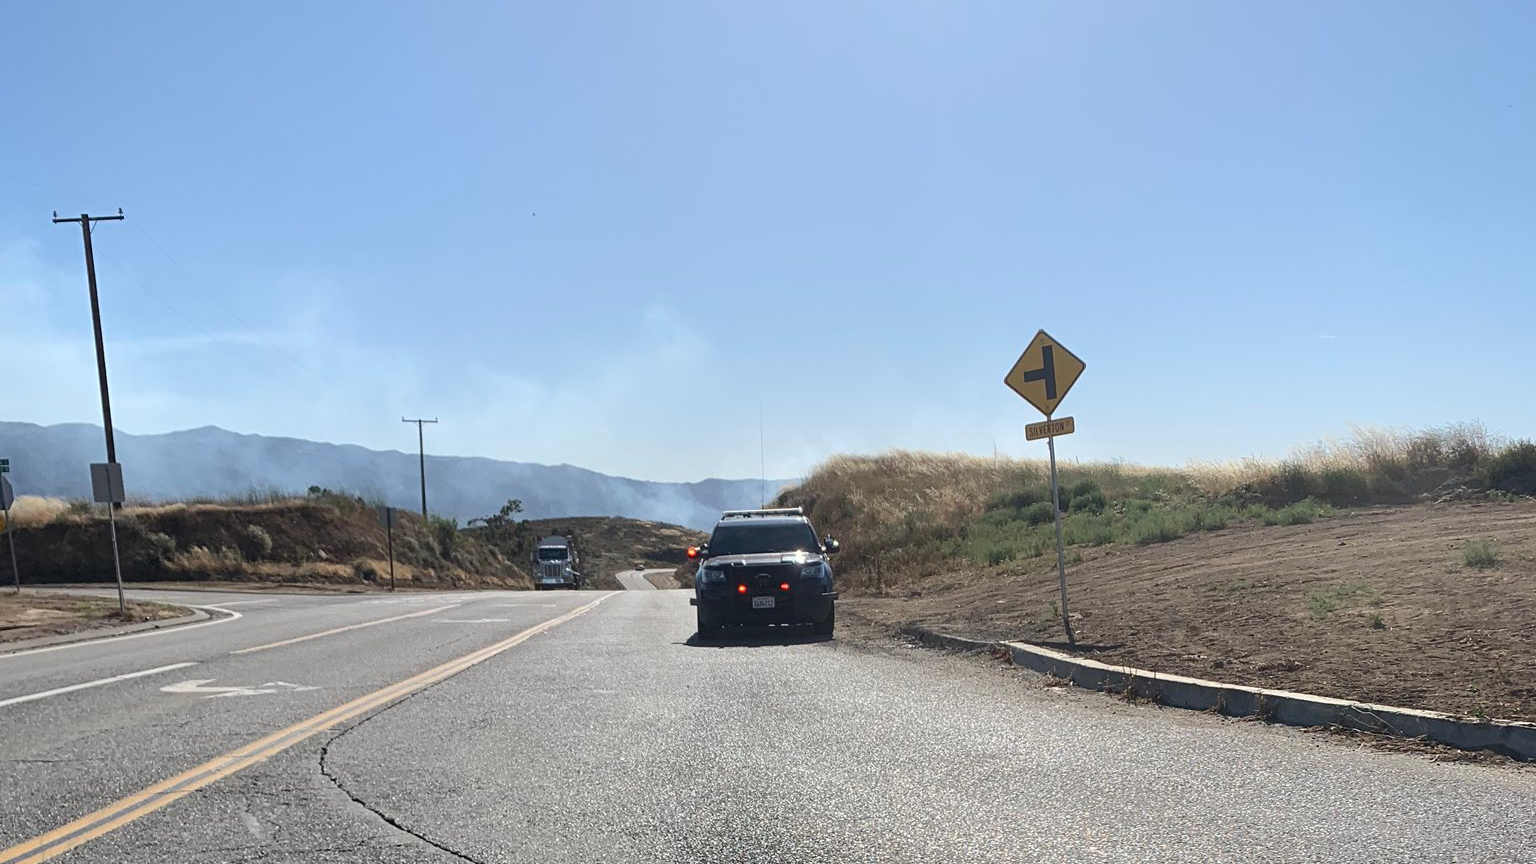 Crews respond to a brush fire spreading rapidly near Corona on June 8, 2020, in a photo provided by the California Highway Patrol.